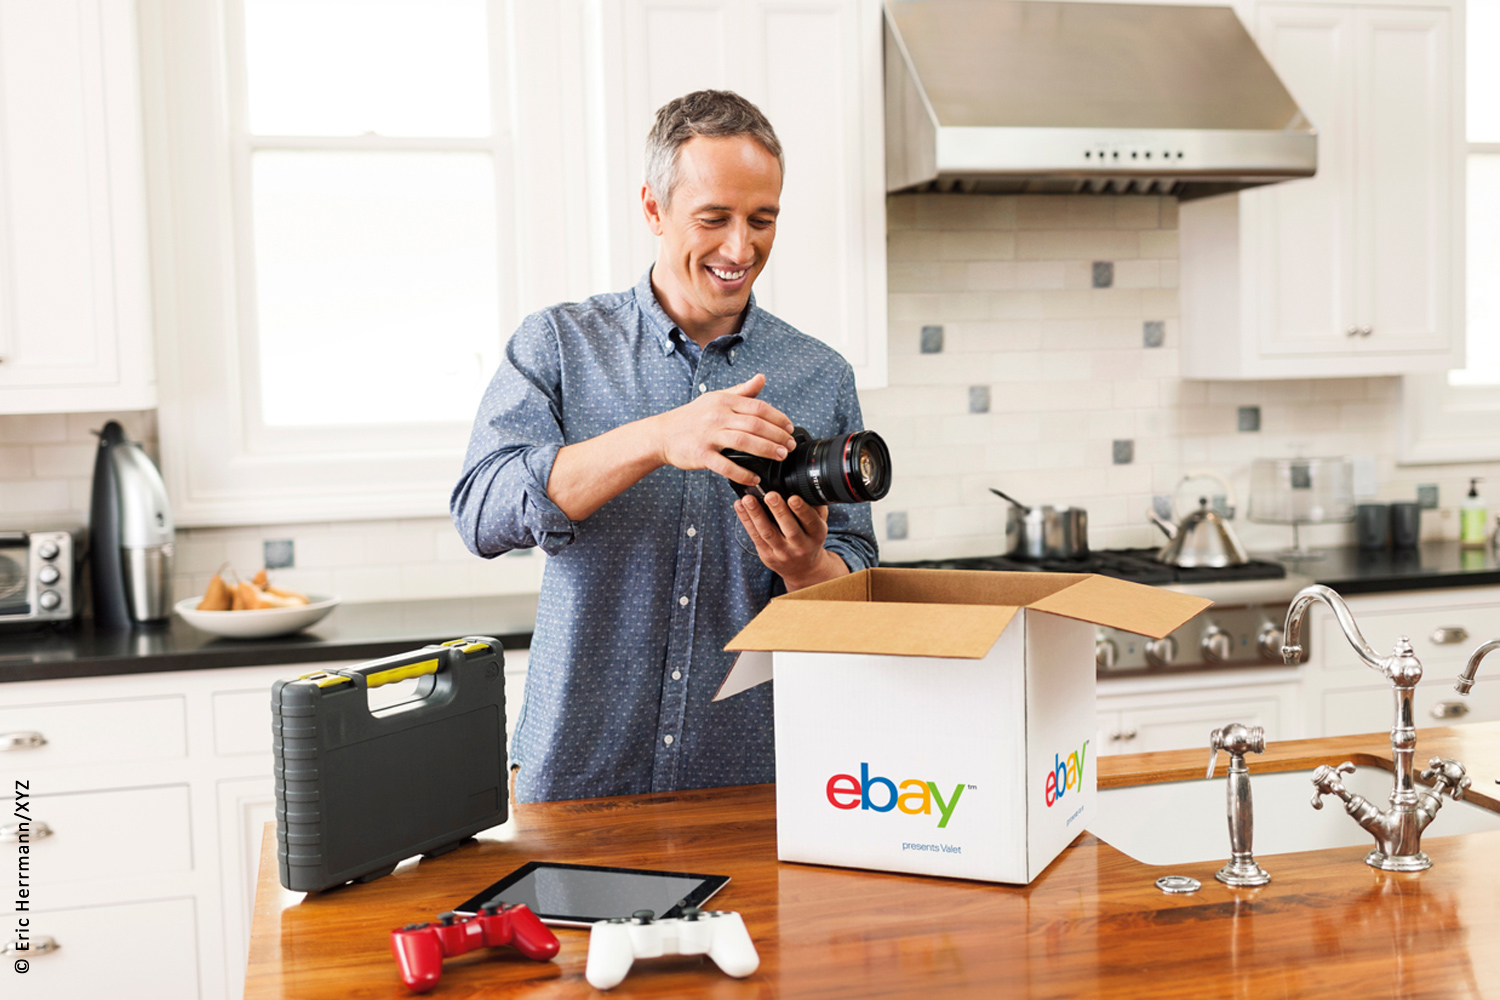 photo of smiling man standing behind kitchen counter putting camera into an ebay valet shipping service box